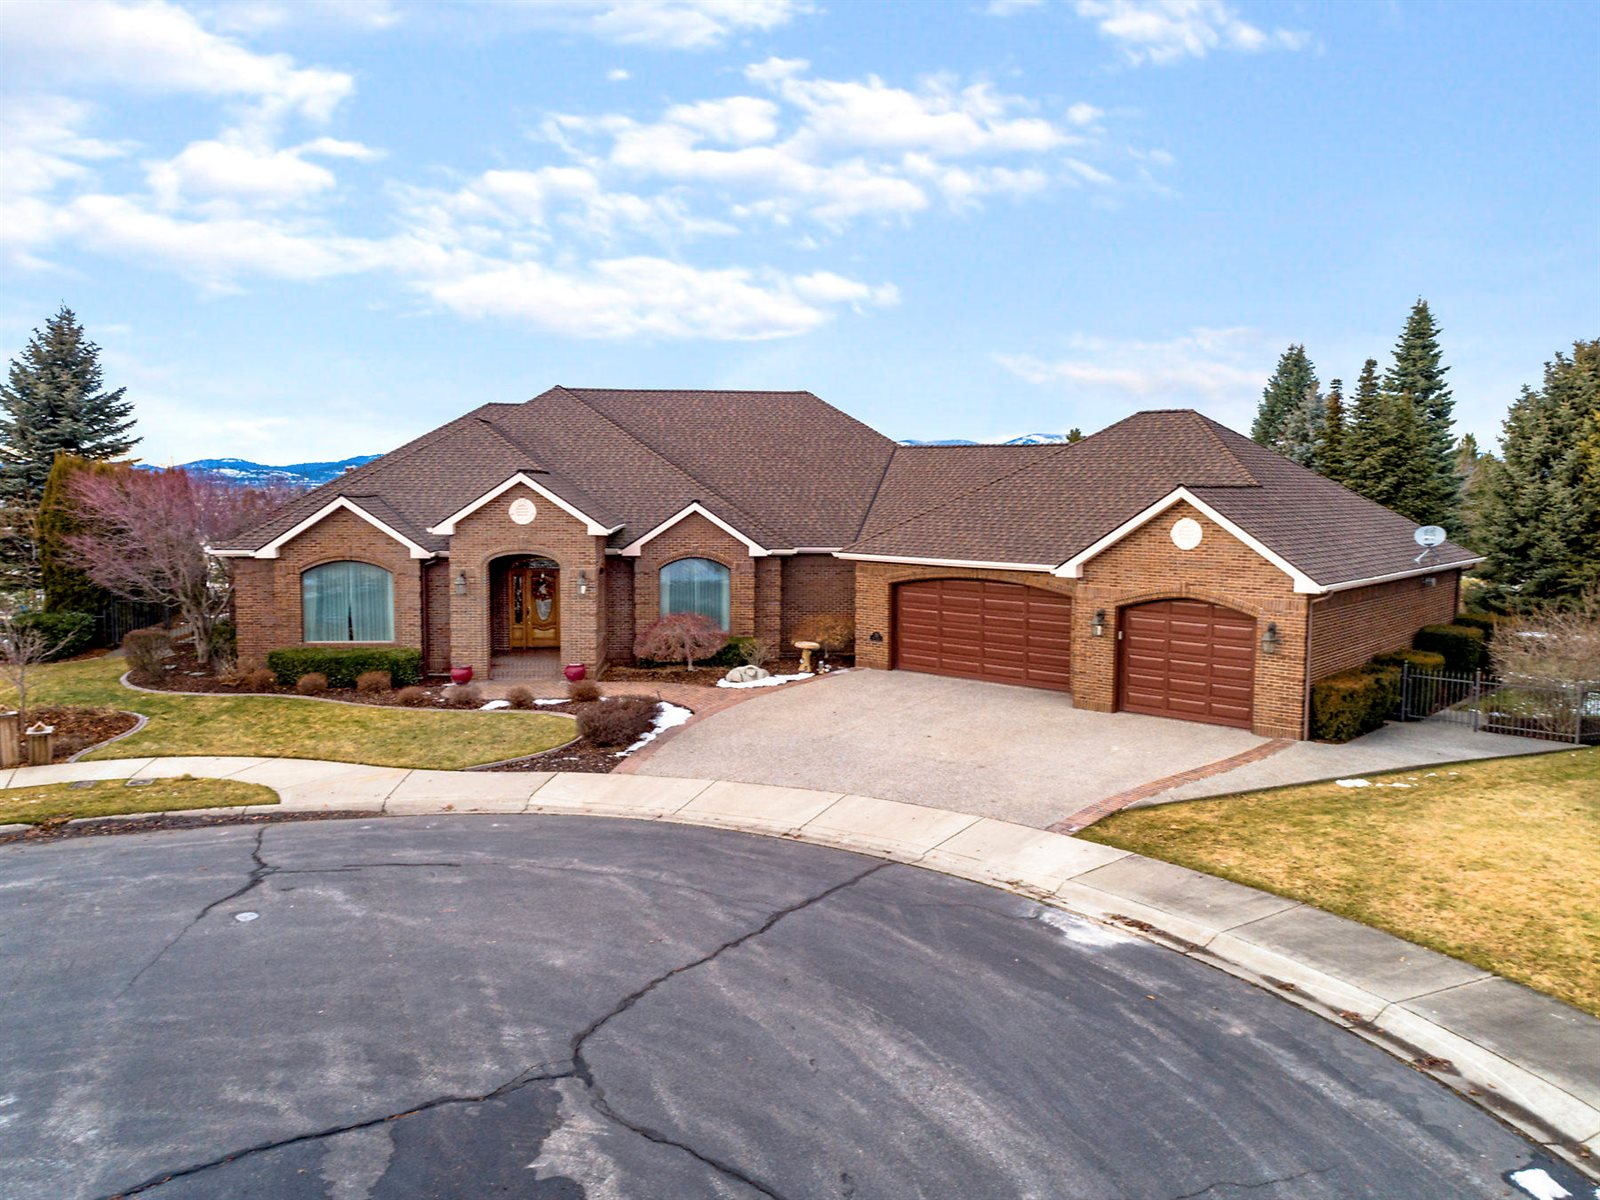 770 North Skye Ct, Post Falls, ID 83854